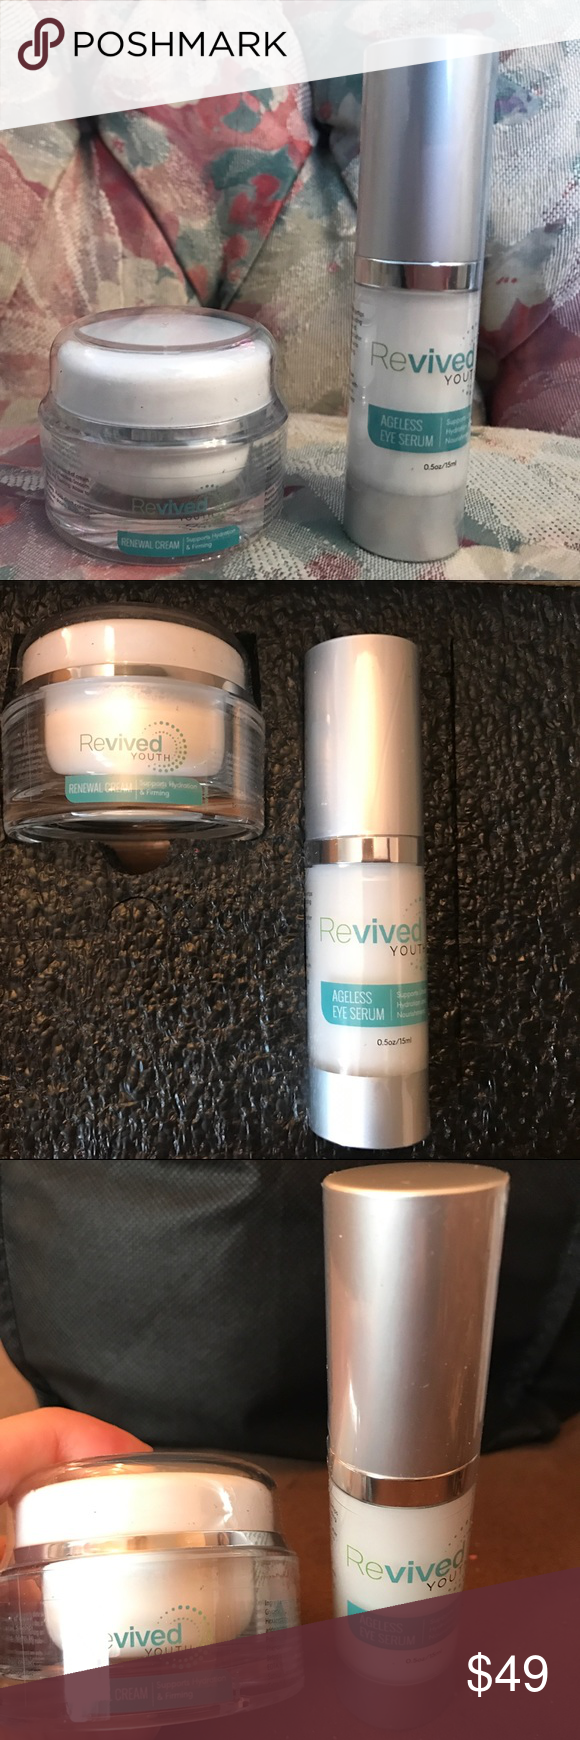 Revived Wrinkle Cream As Seen On Tv Revived Wrinkle Anti Aging Cream As Seen On Tv Inf Anti Aging Cream Recipe Anti Aging Cream Anti Aging Supplements